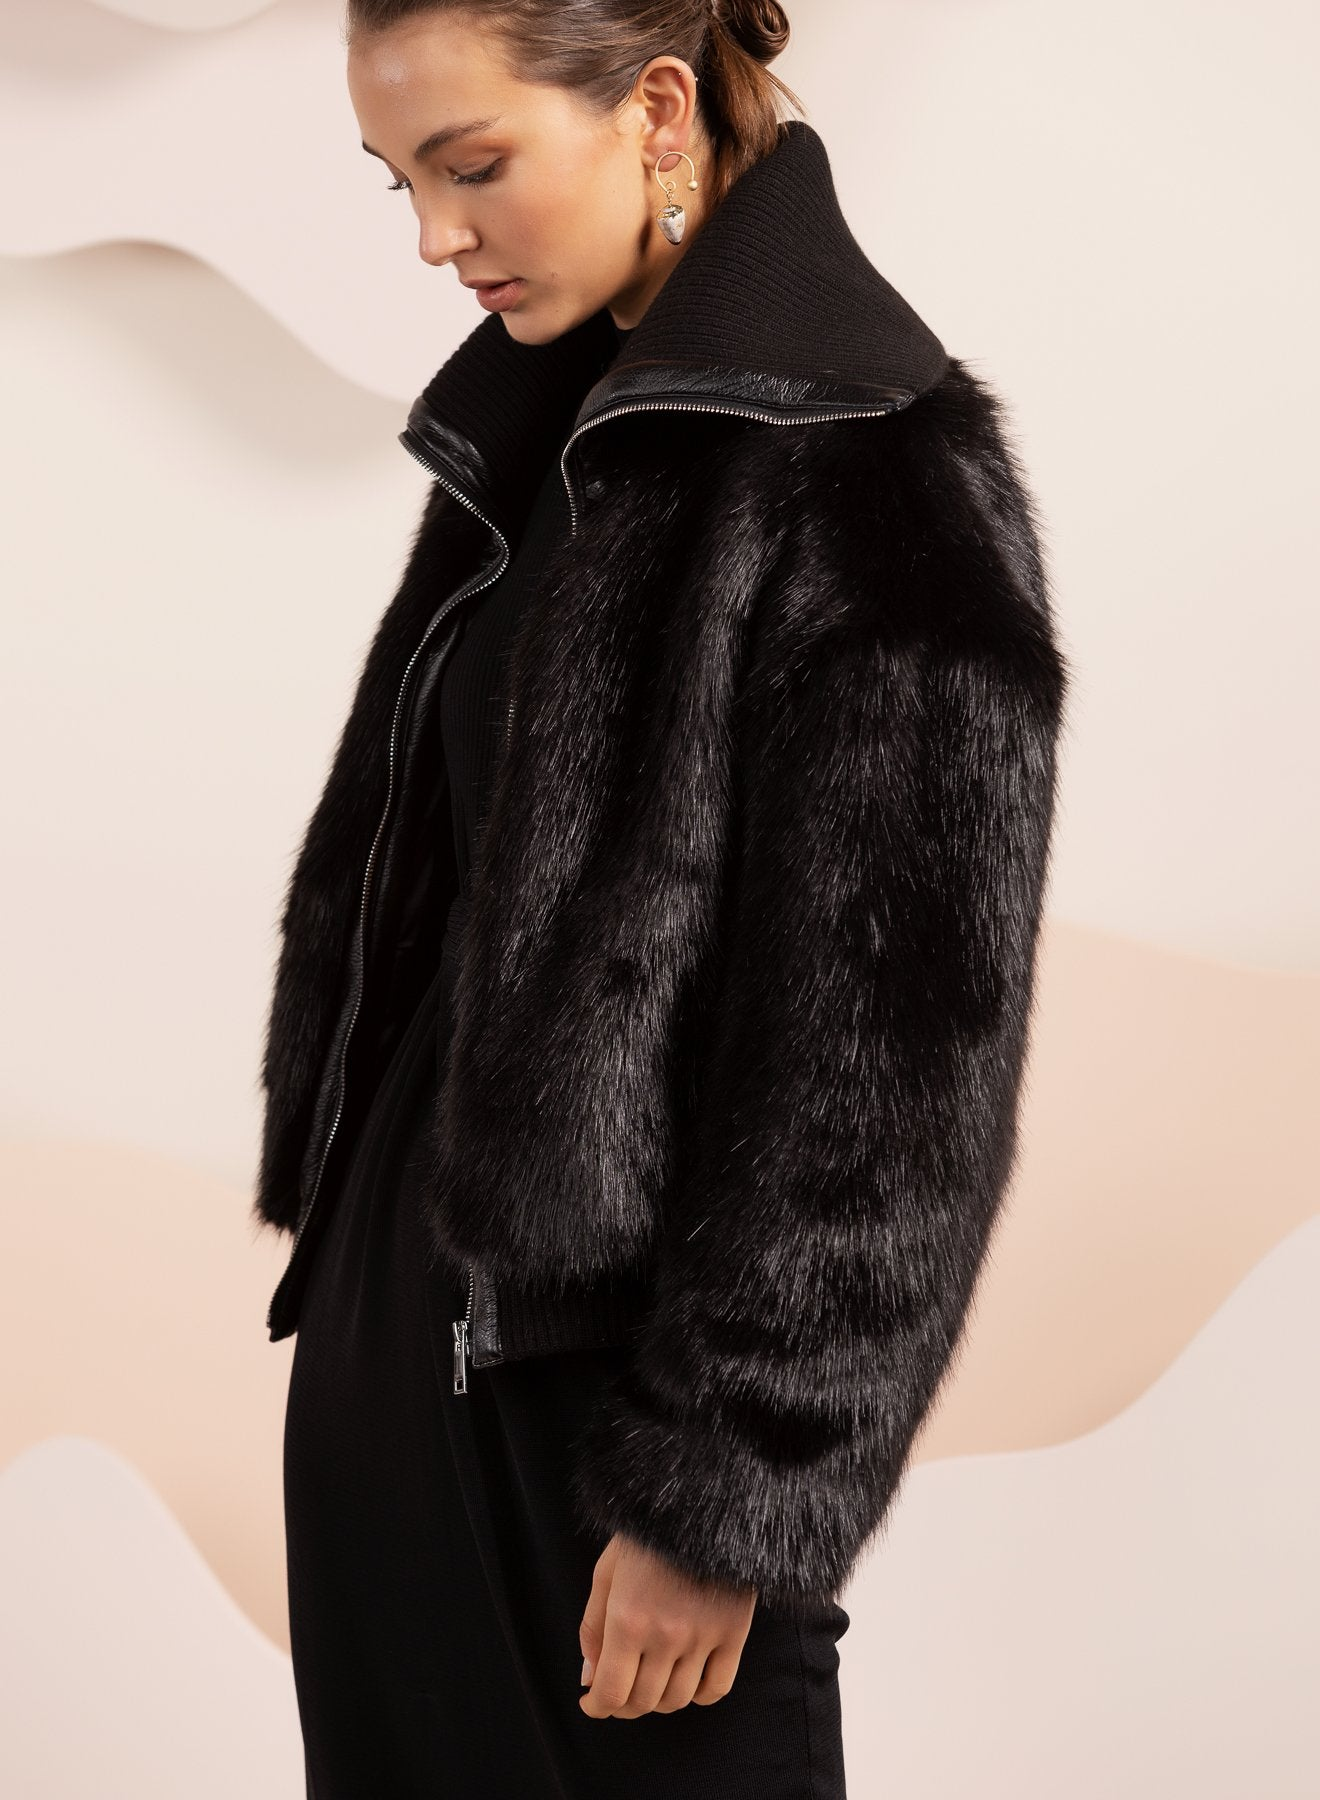 wide collar faux fur jacket in black by bubish